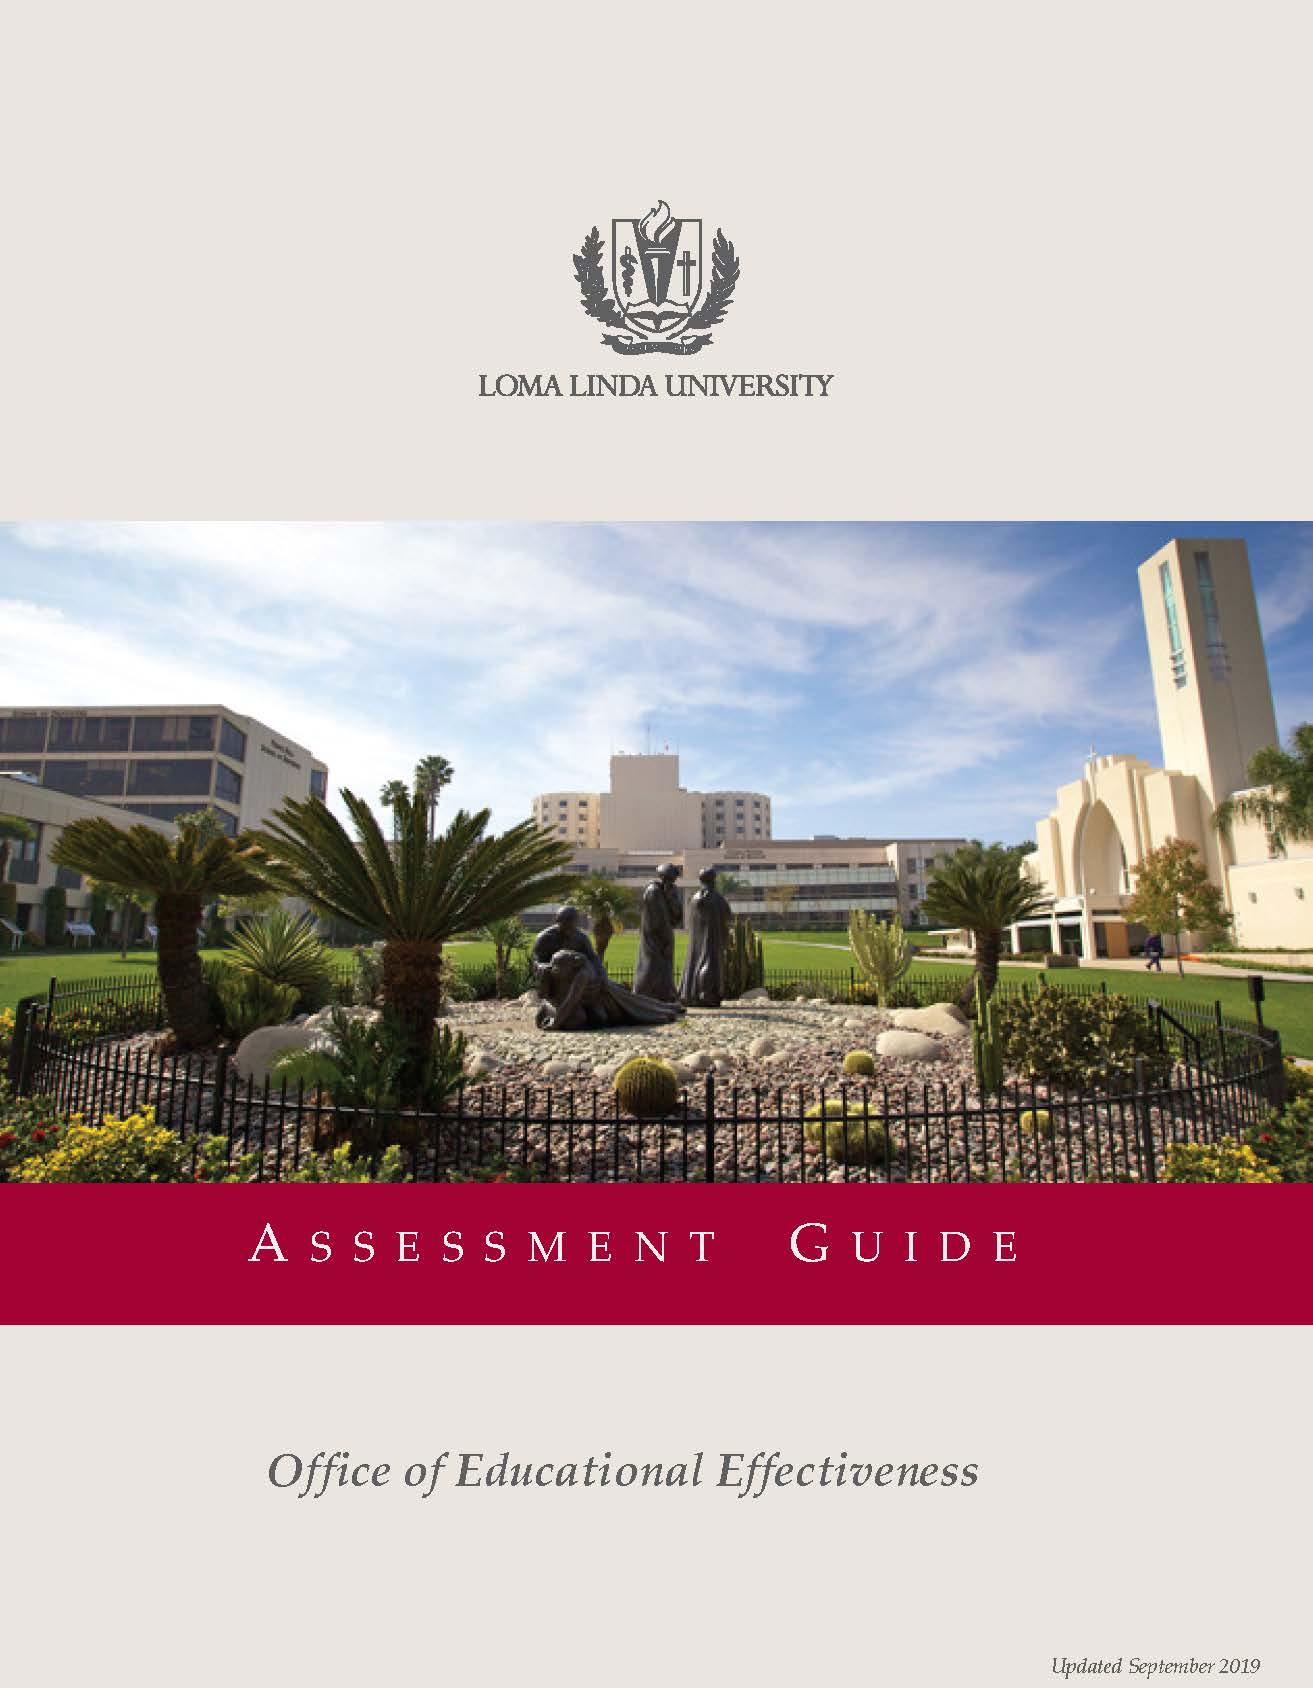 LLU Assessment Guide 2015-2016